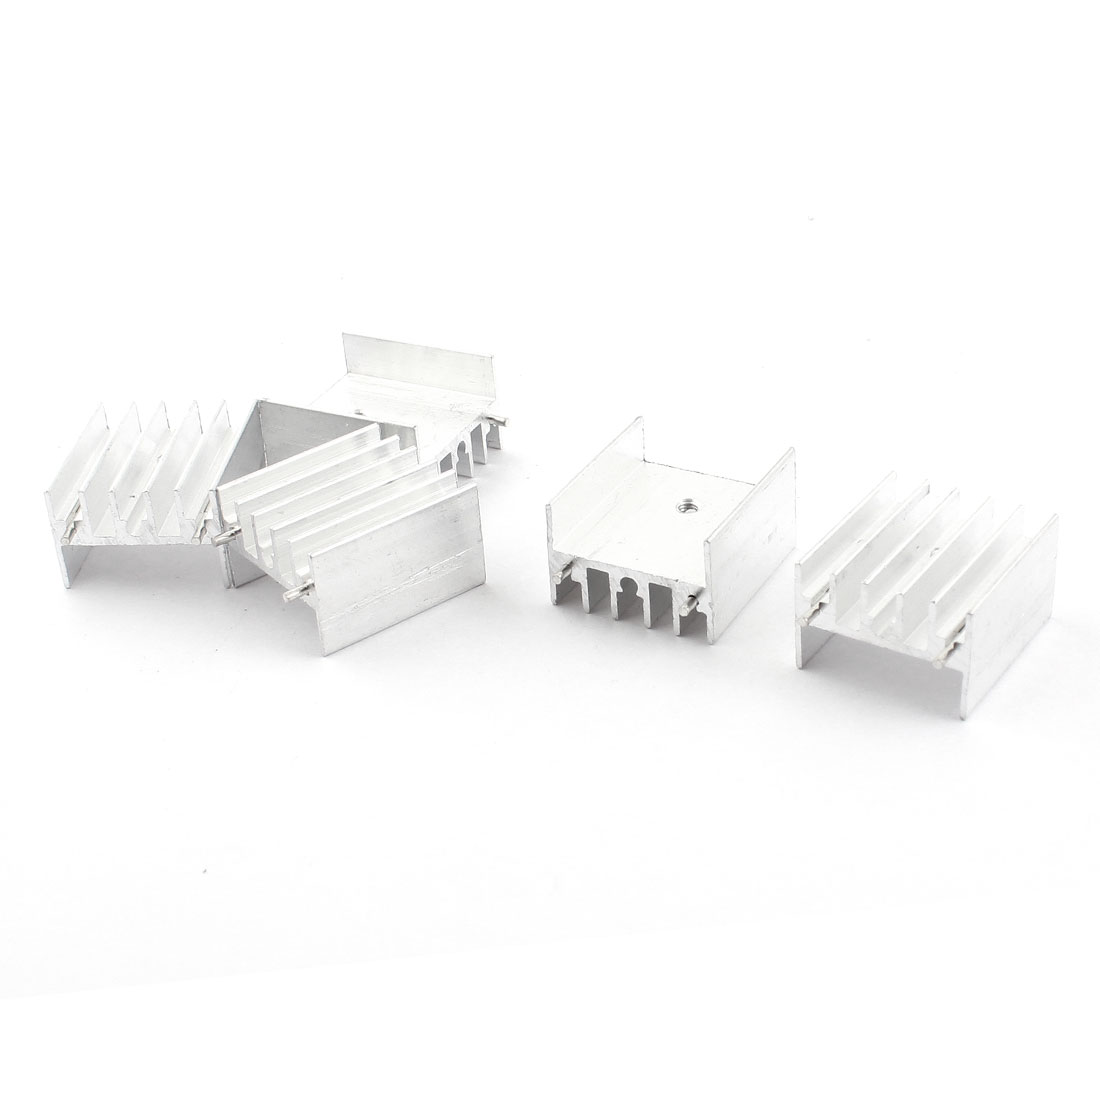 5pcs Spare Parts Aluminium Radiator Fin Cooling Cooler Heatsink Heat Sink 23x10x25mm w Needle for PCB Board